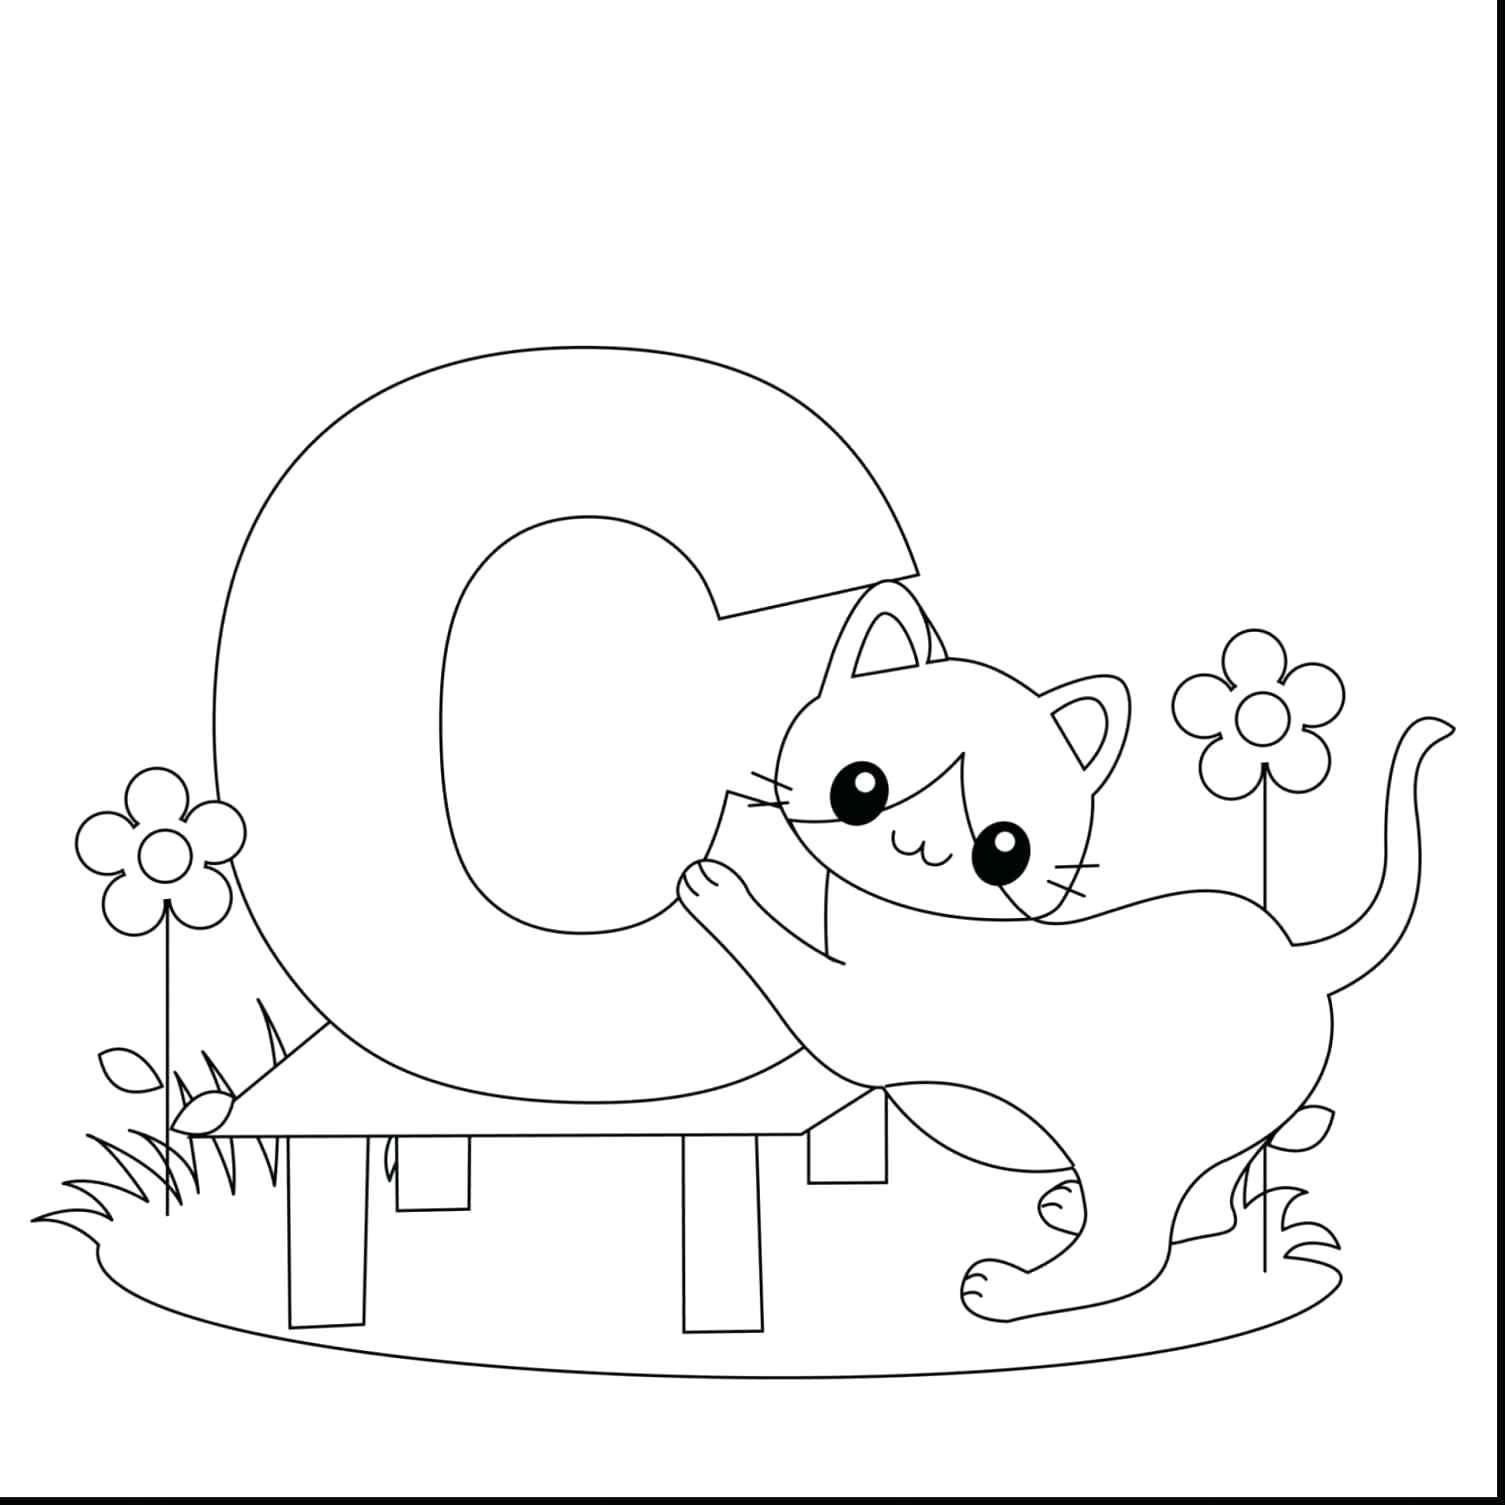 1505x1505 Coast Guard Coloring Pages For Kids